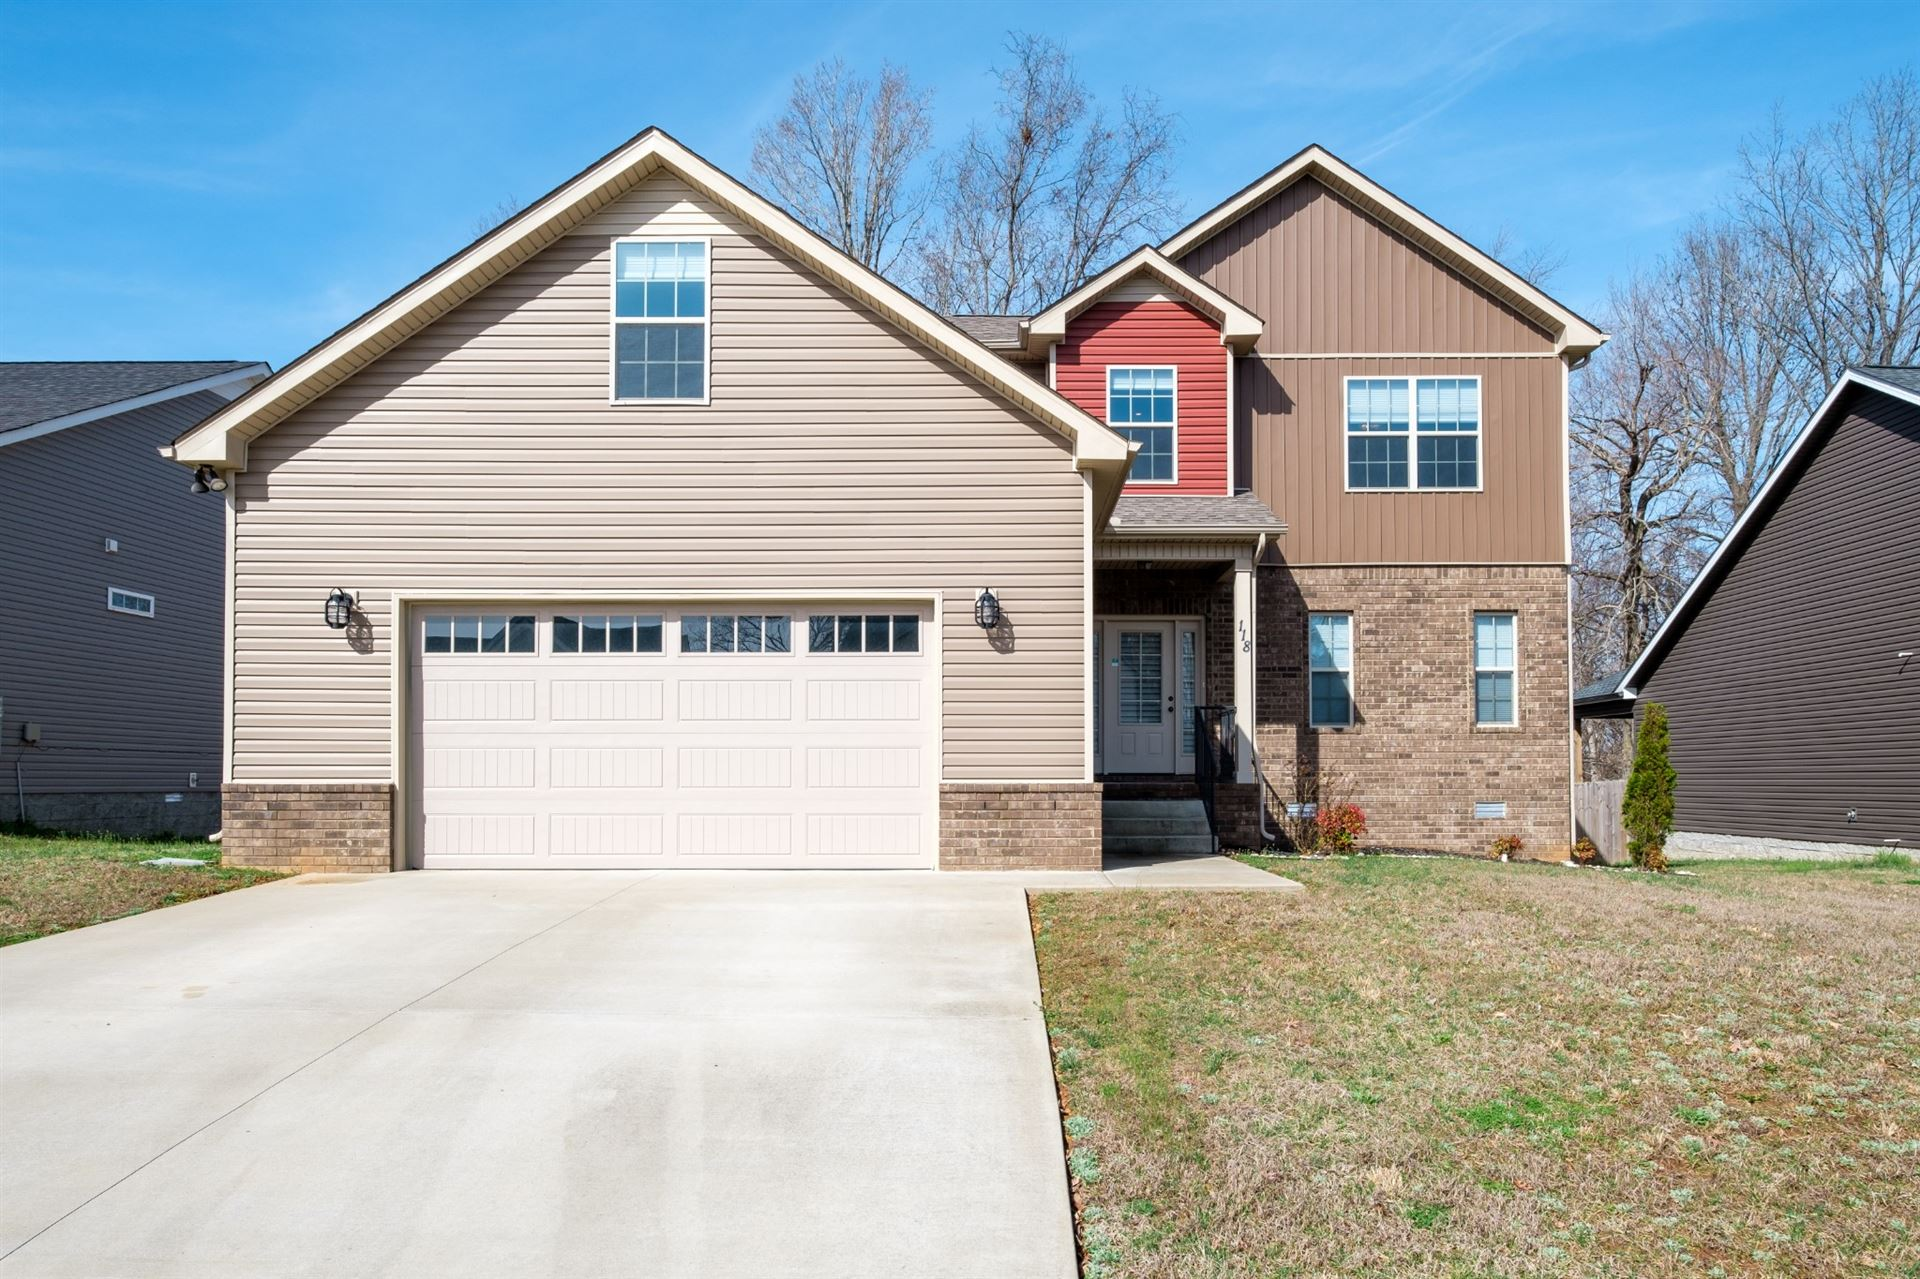 118 Sycamore Hill Dr, Clarksville, TN 37042 - MLS#: 2244945